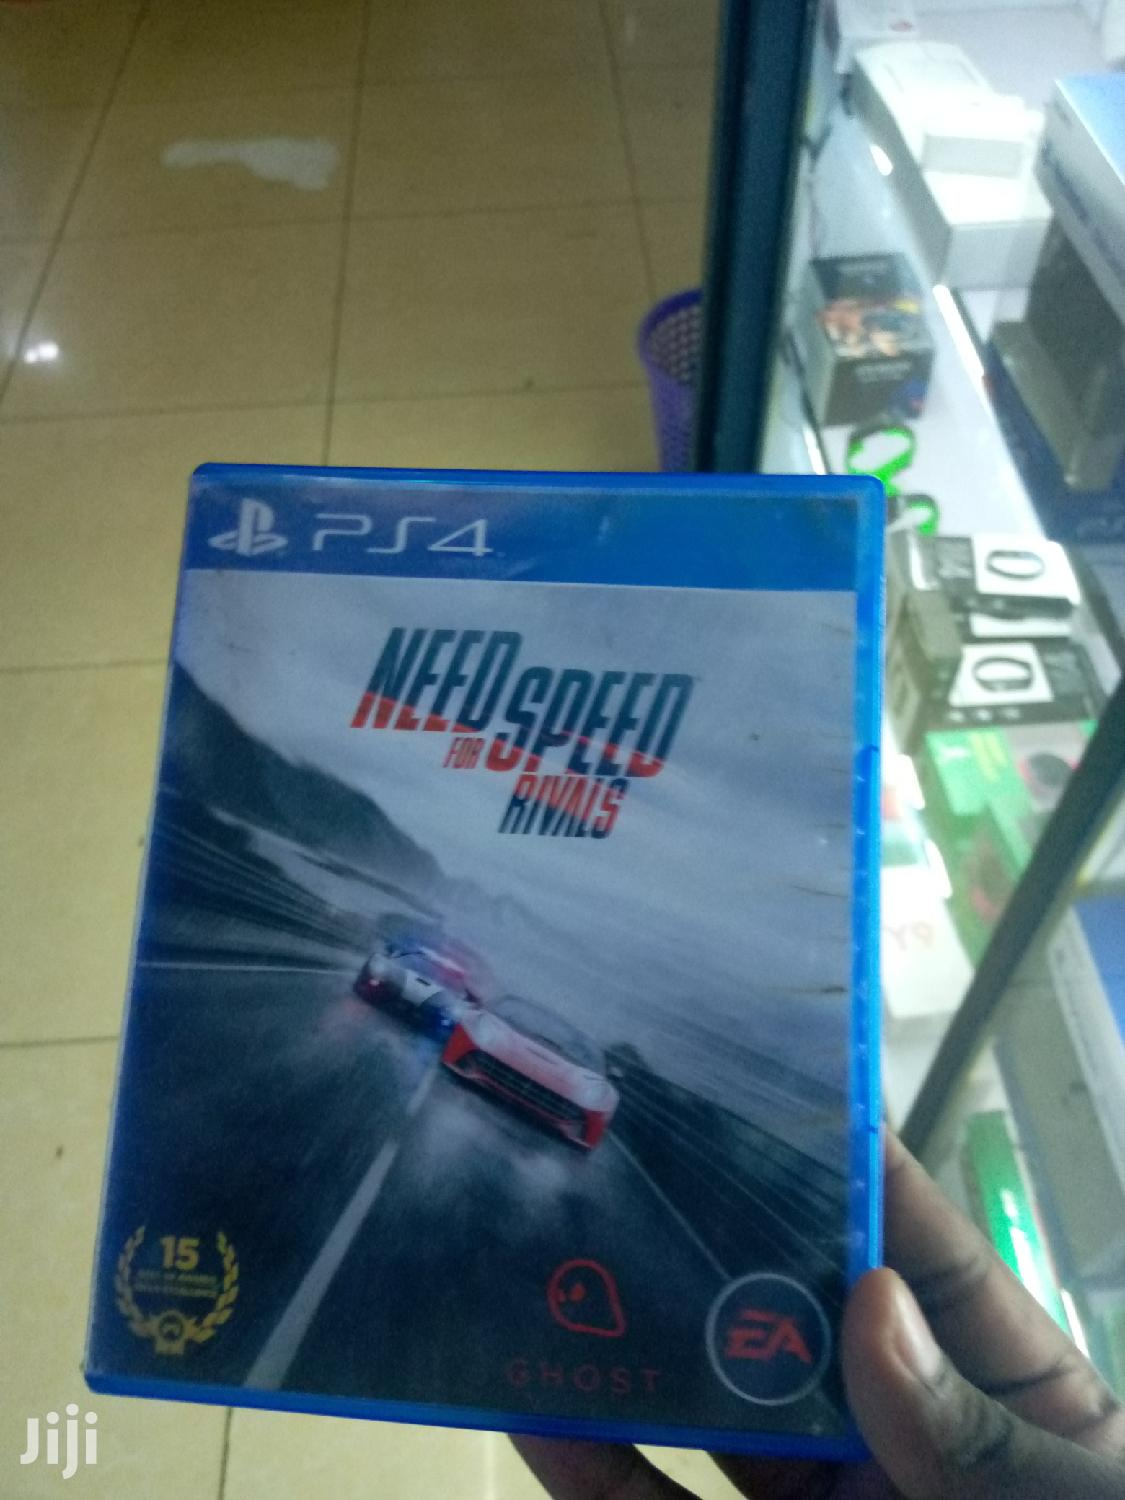 Nfs Rivals For Playstation4